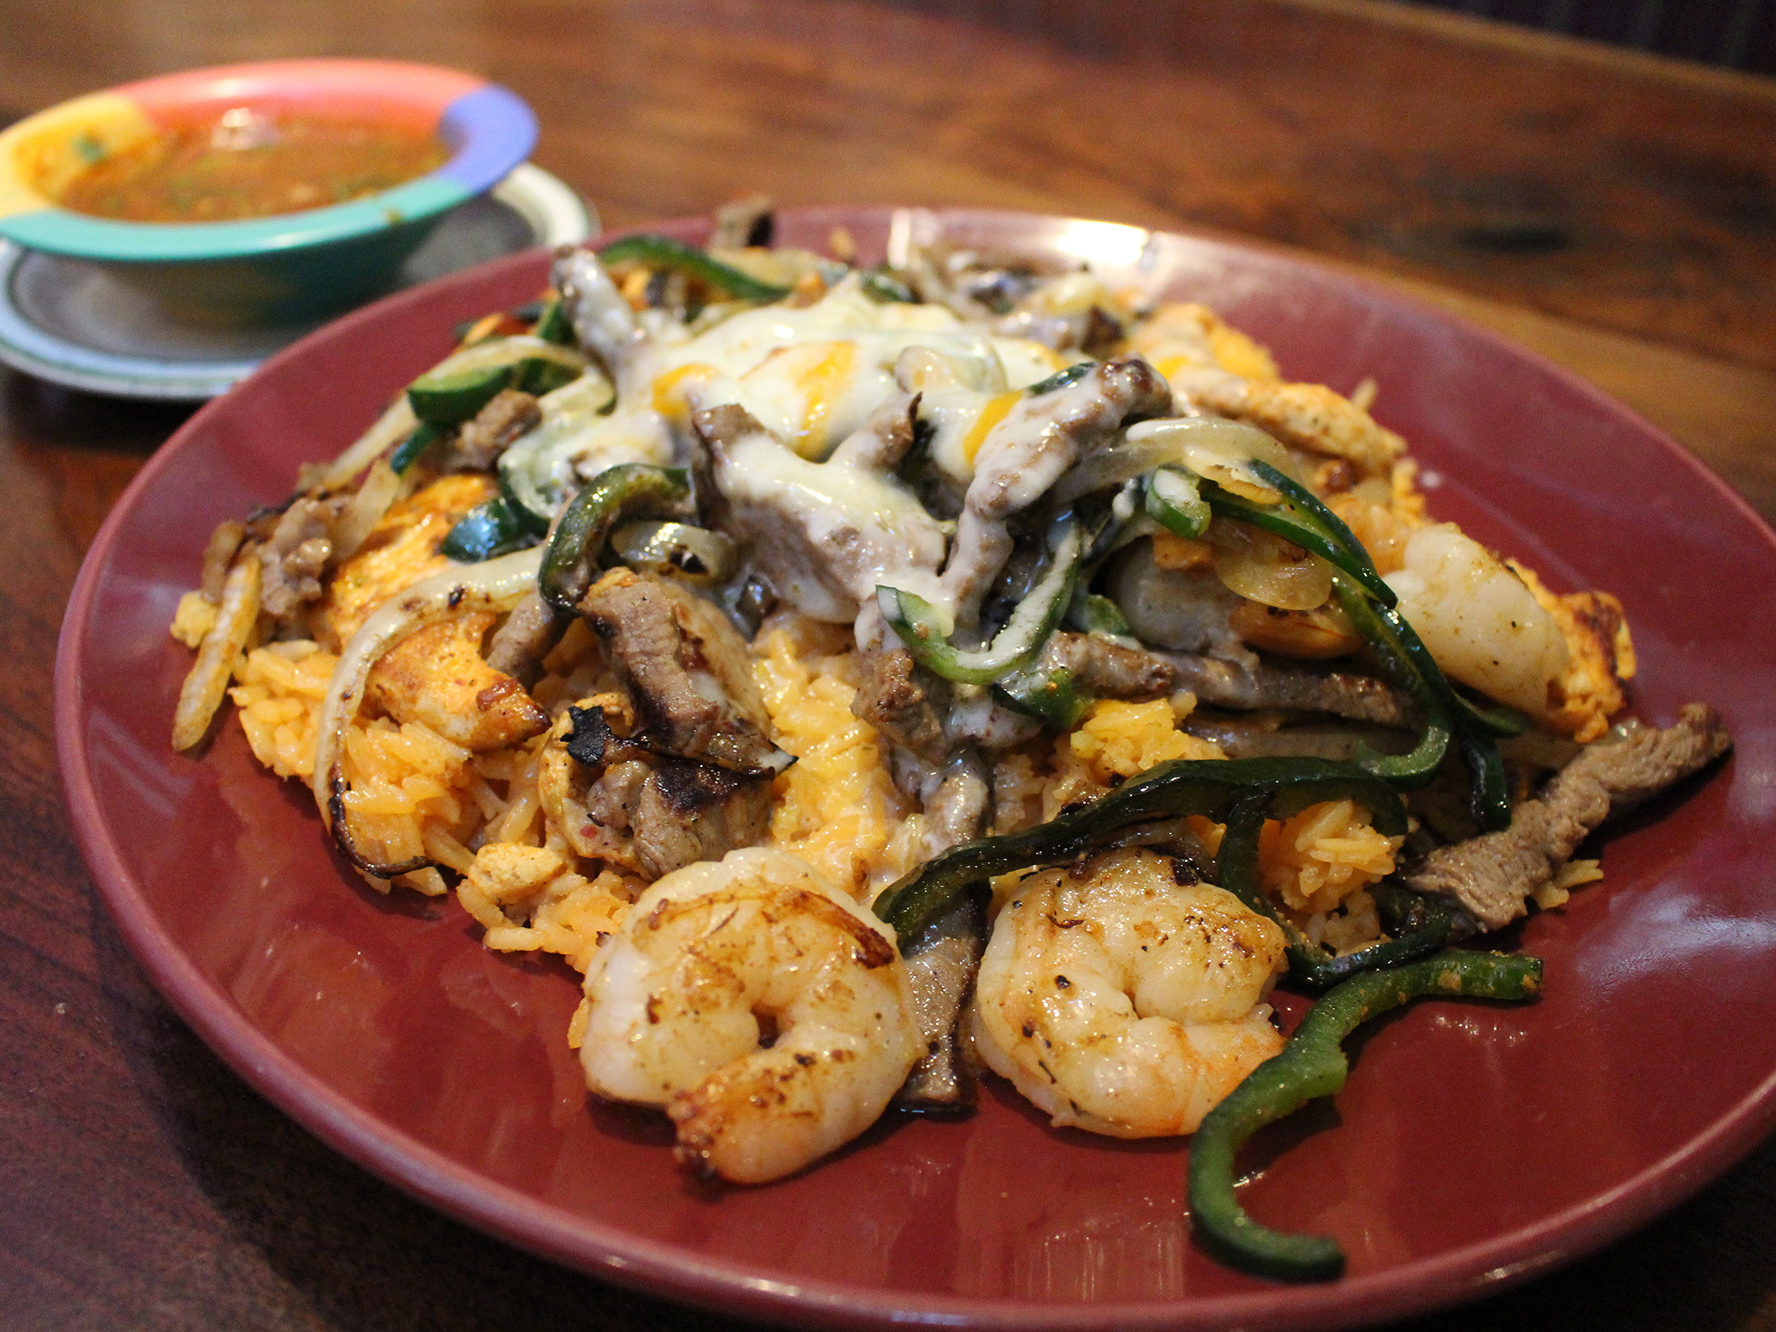 """The ACP dish at La Rancherita in Raleigh, N.C., is delicious, because it uses cheese from Chihuahua, which is milkier and doesn't melt as much. Charlie Ibarra, a restaurateur whose family owns the La Rancherita restaurants, says his father didn't know what ACP was when he started out. """"But we sold it. It paid the bills."""""""